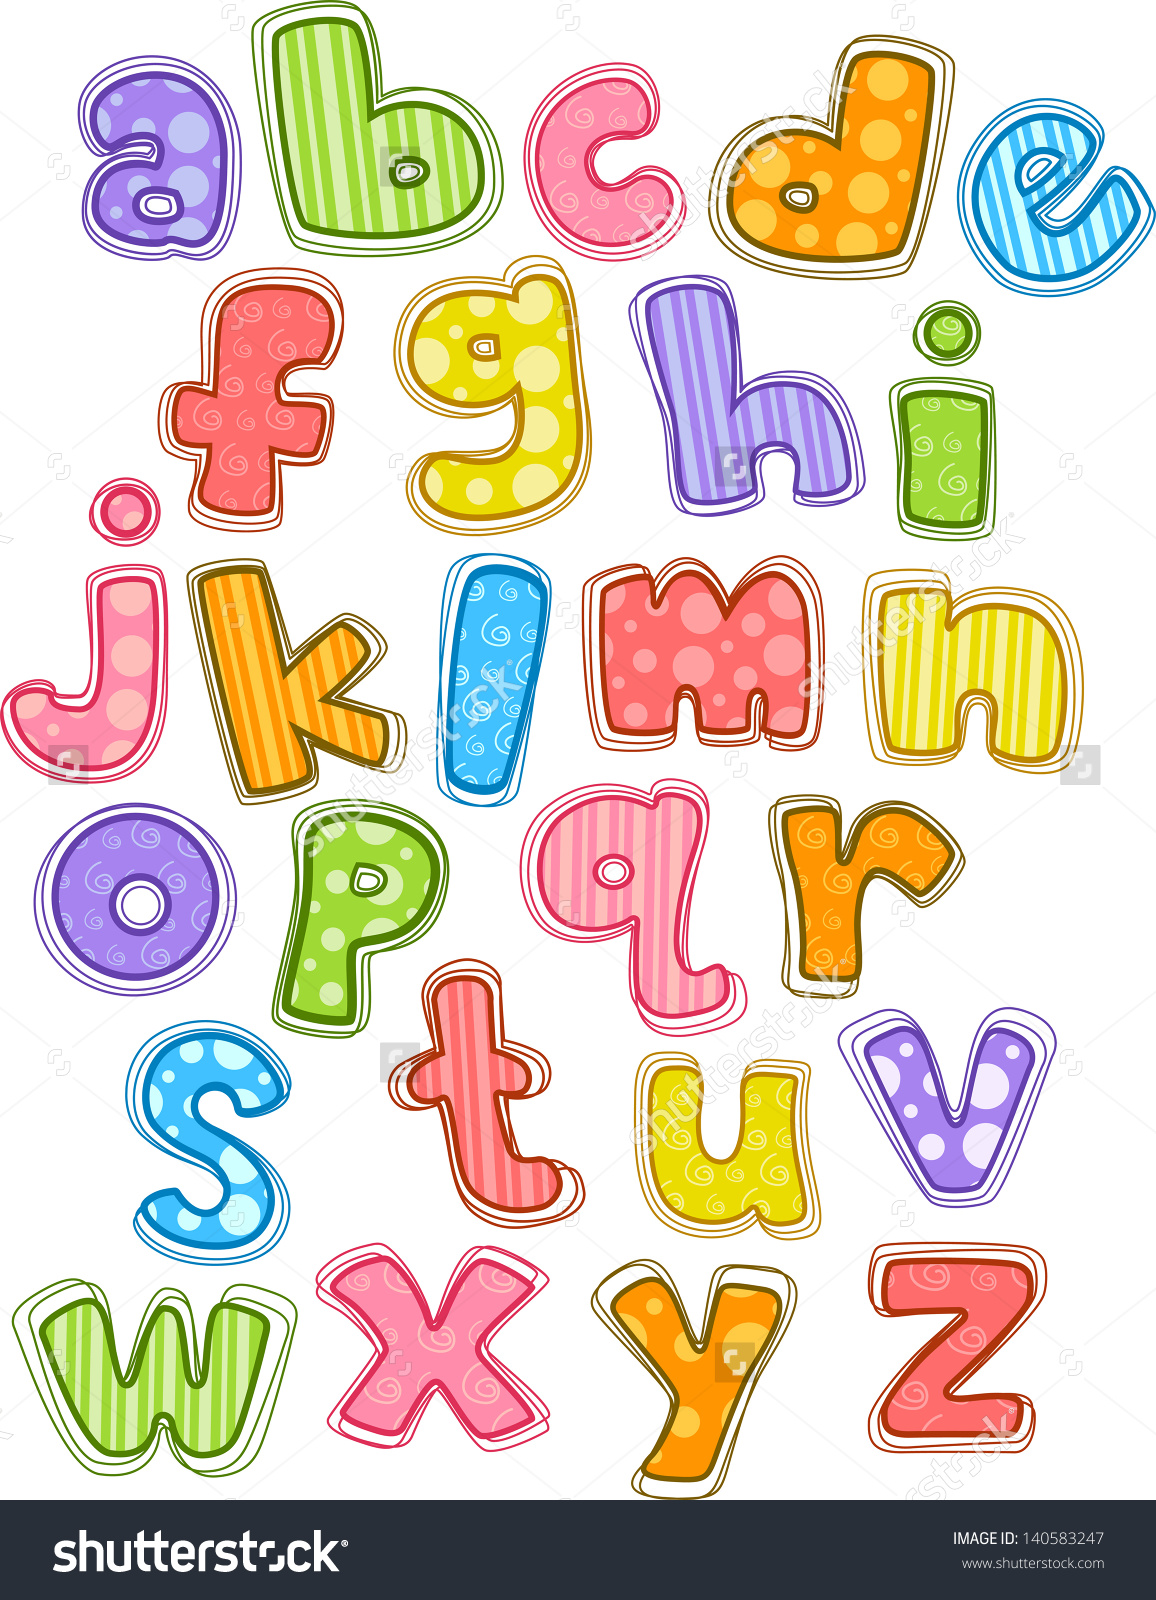 Lowercase alphabet clipart image library stock Lowercase alphabet clipart - ClipartFest image library stock